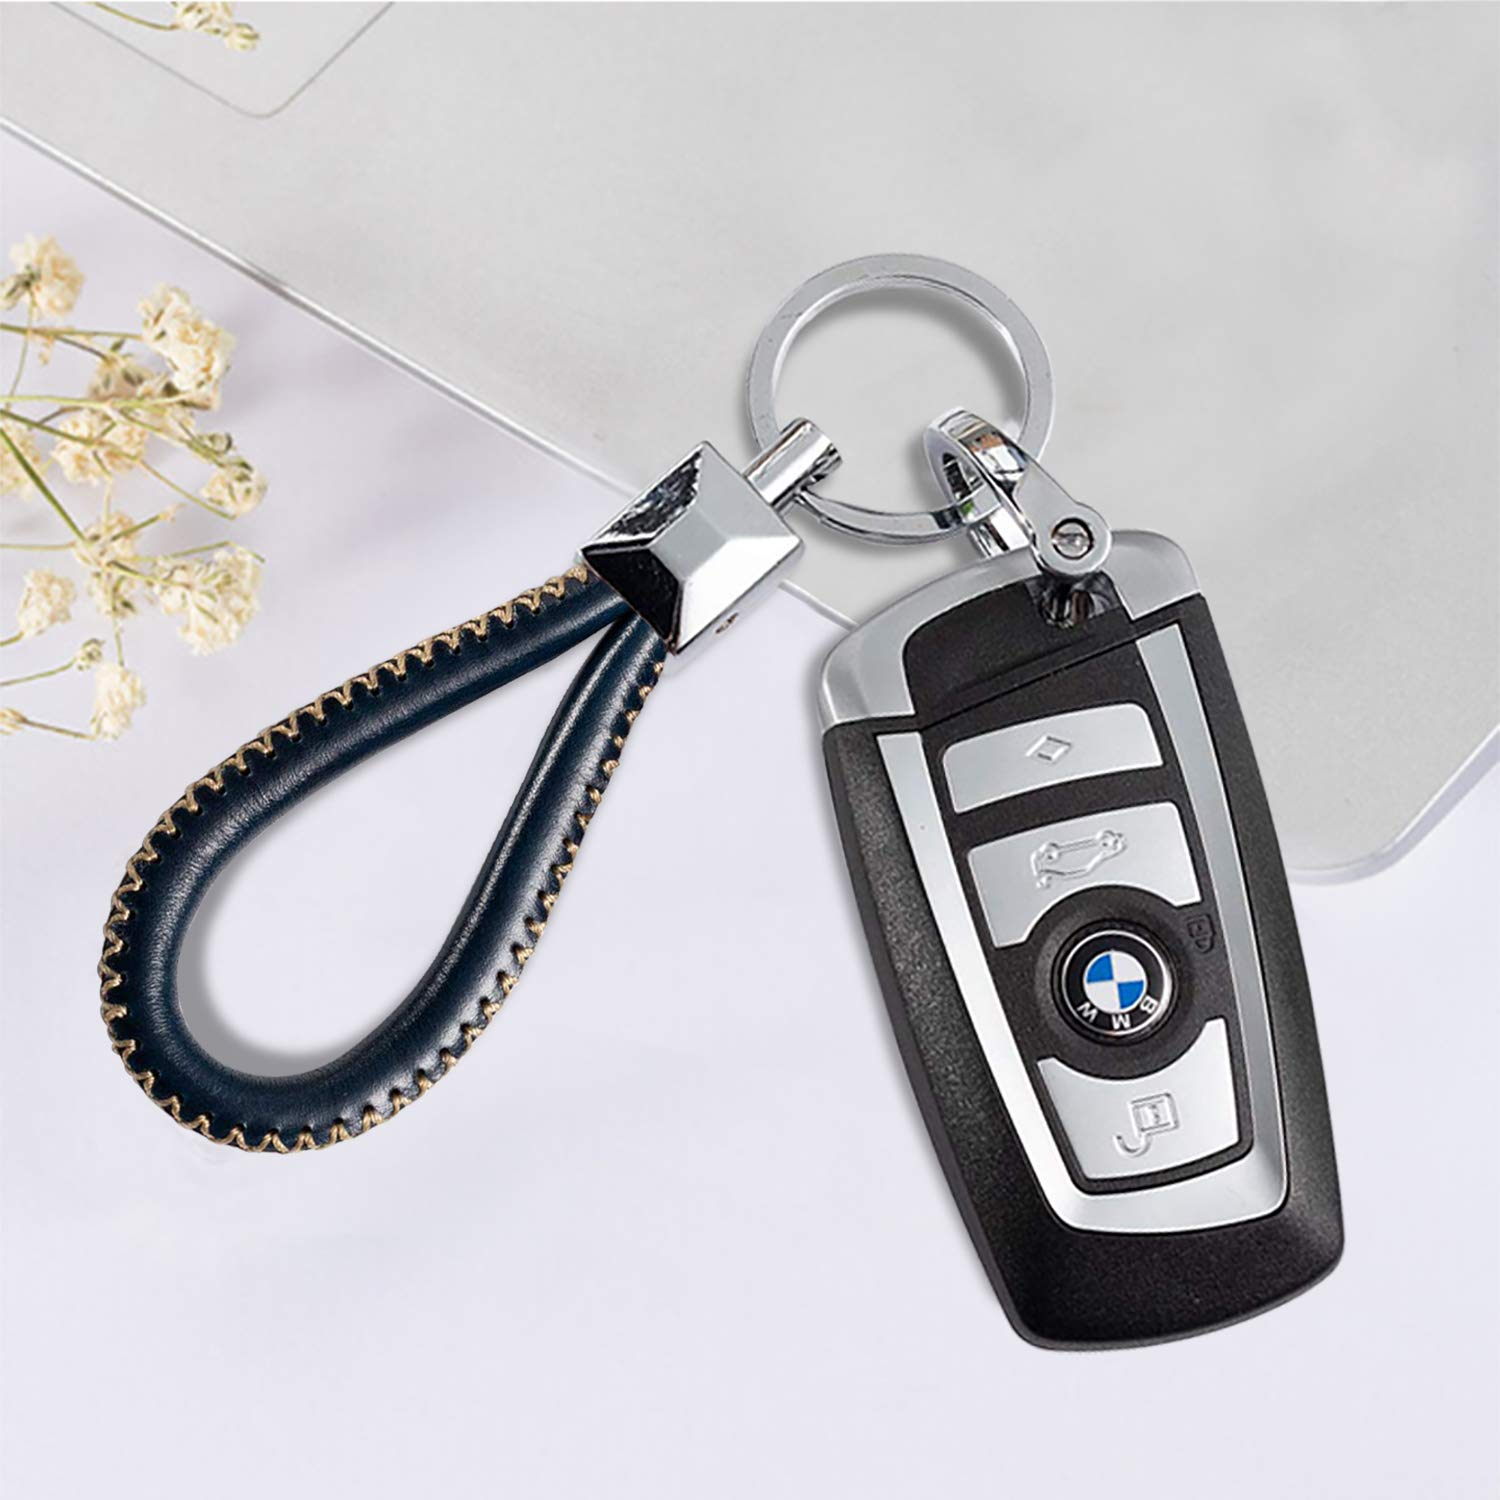 KeyChain Master 2Pack Genuine Leather Car Keychain with Logo,Handmade Leather Car Key Chain